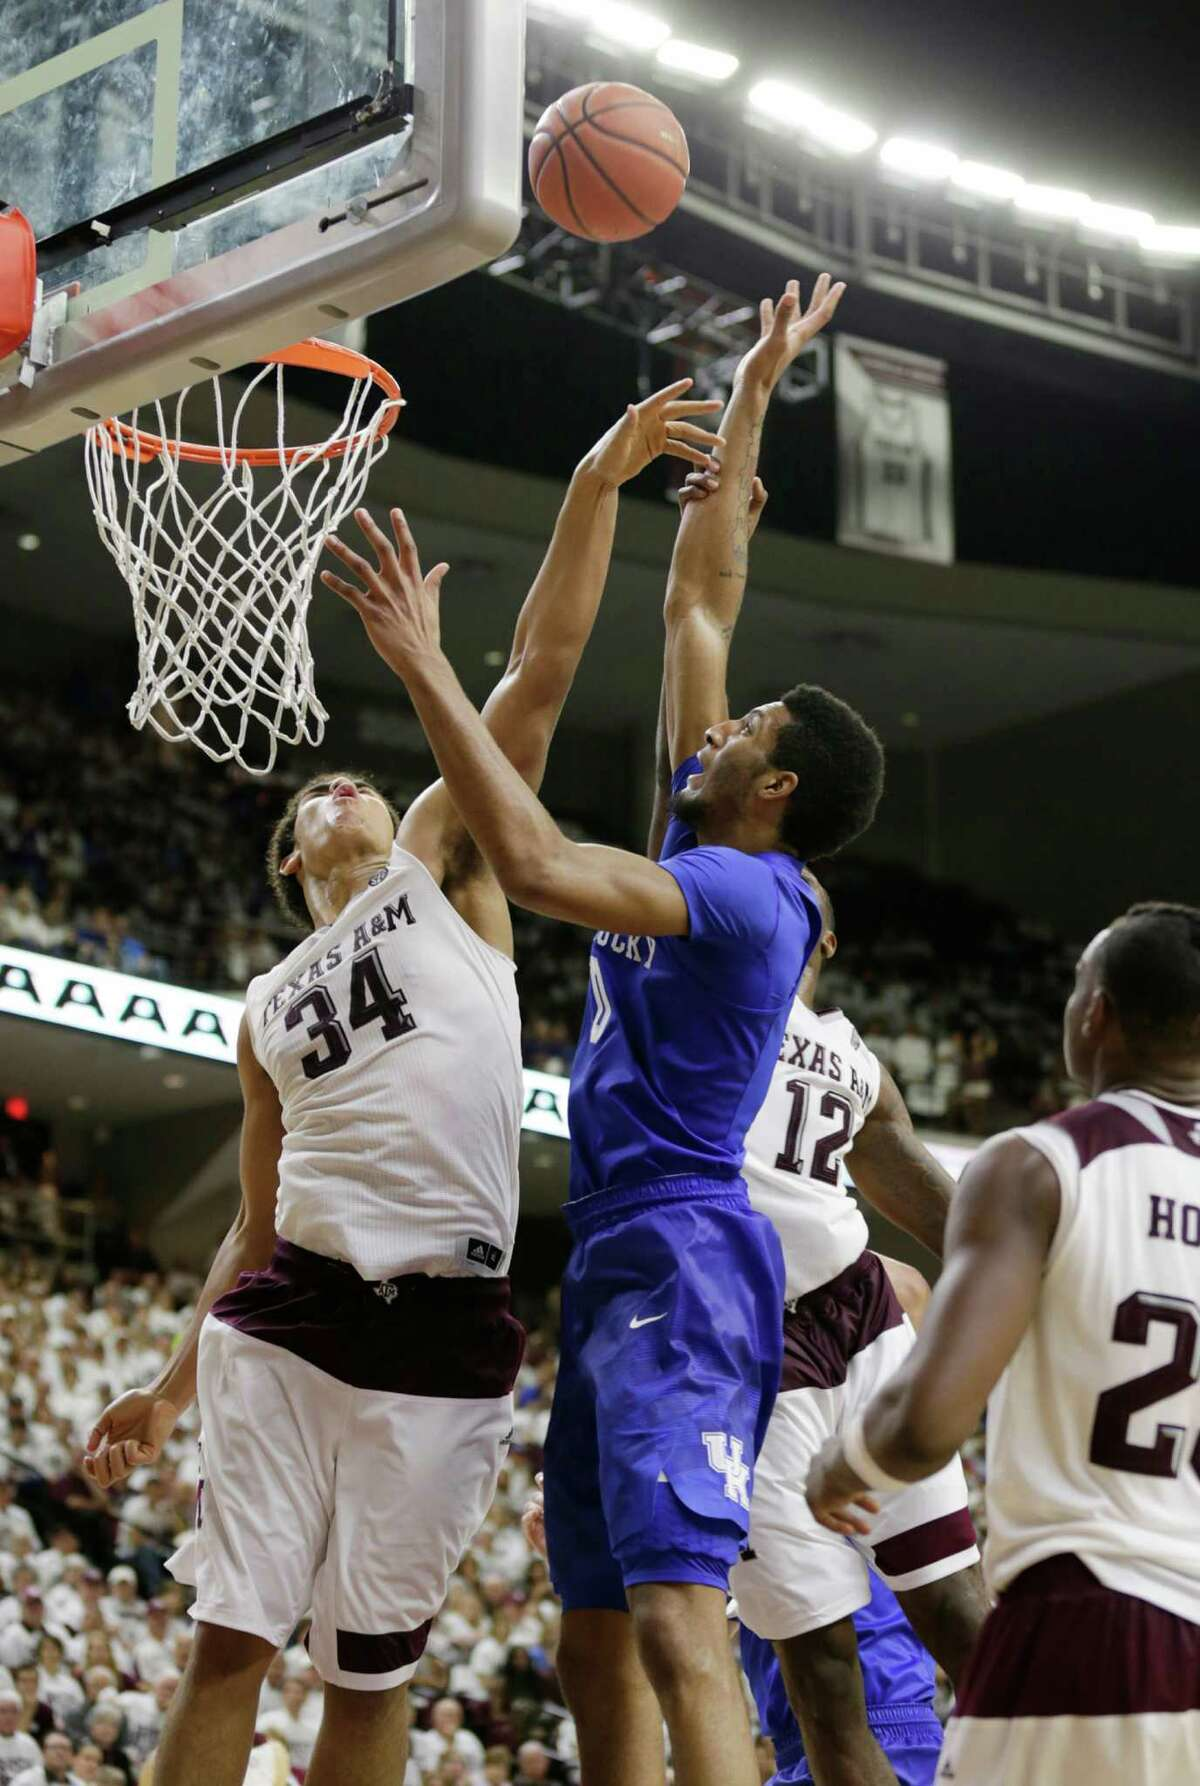 Texas A&M's Tyler Davis (34) bats a rebound away from Kentucky's Marcus Lee (00) in overtime at Reed Arena in College Station, Texas, on Saturday, Feb. 20, 2016. The host Aggies won, 79-77, in OT. (Pablo Alcala/Lexington Herald-Leader/TNS)